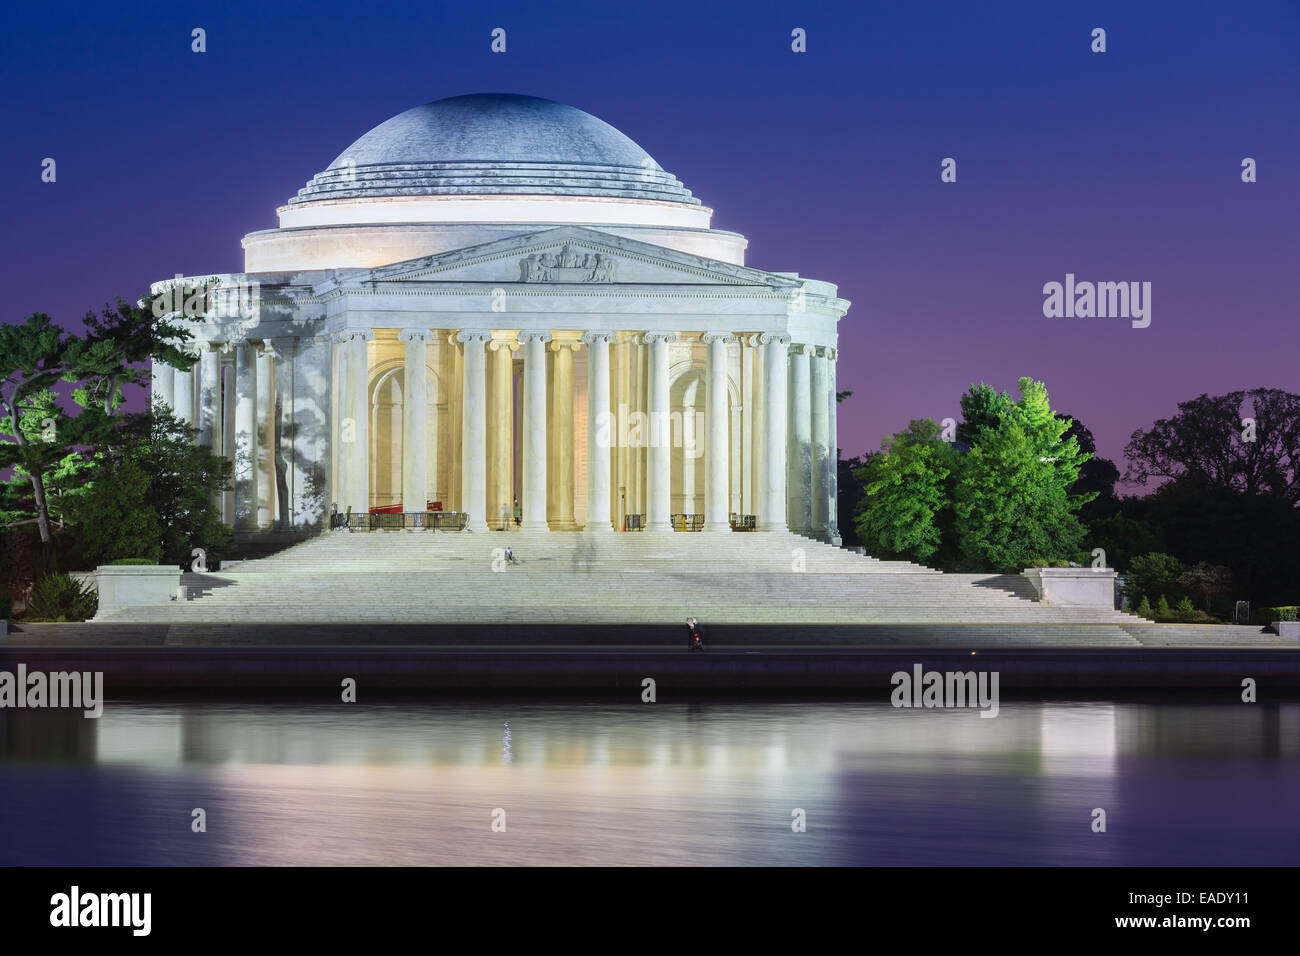 El Thomas Jefferson Memorial es un monumento conmemorativo presidencial en Washington, D.C, dedicada a Thomas Jefferson. Imagen De Stock